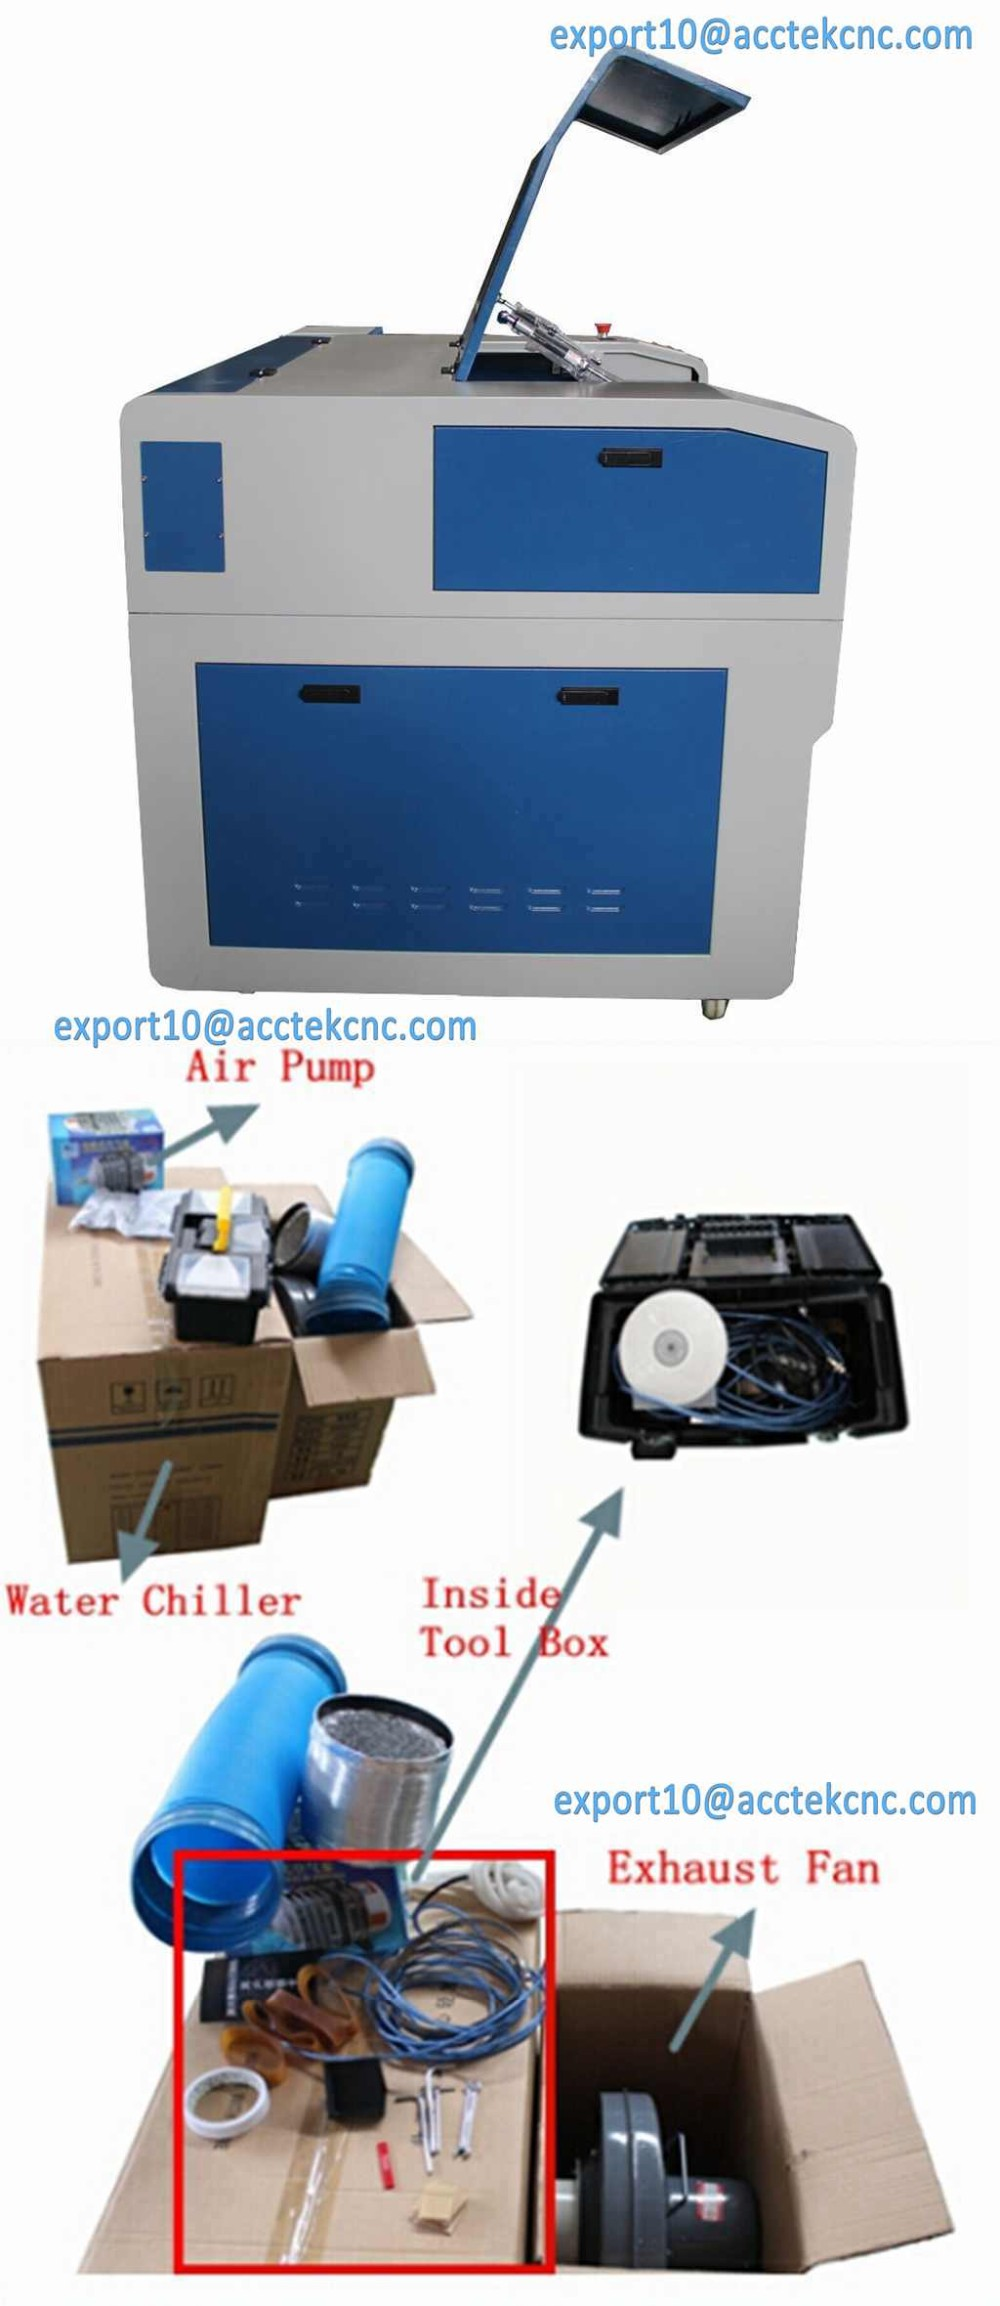 4.Acctek AKJ6090 2016 Hot salemini CO2 laser engraving machine factory price machine details and accessories.jpg